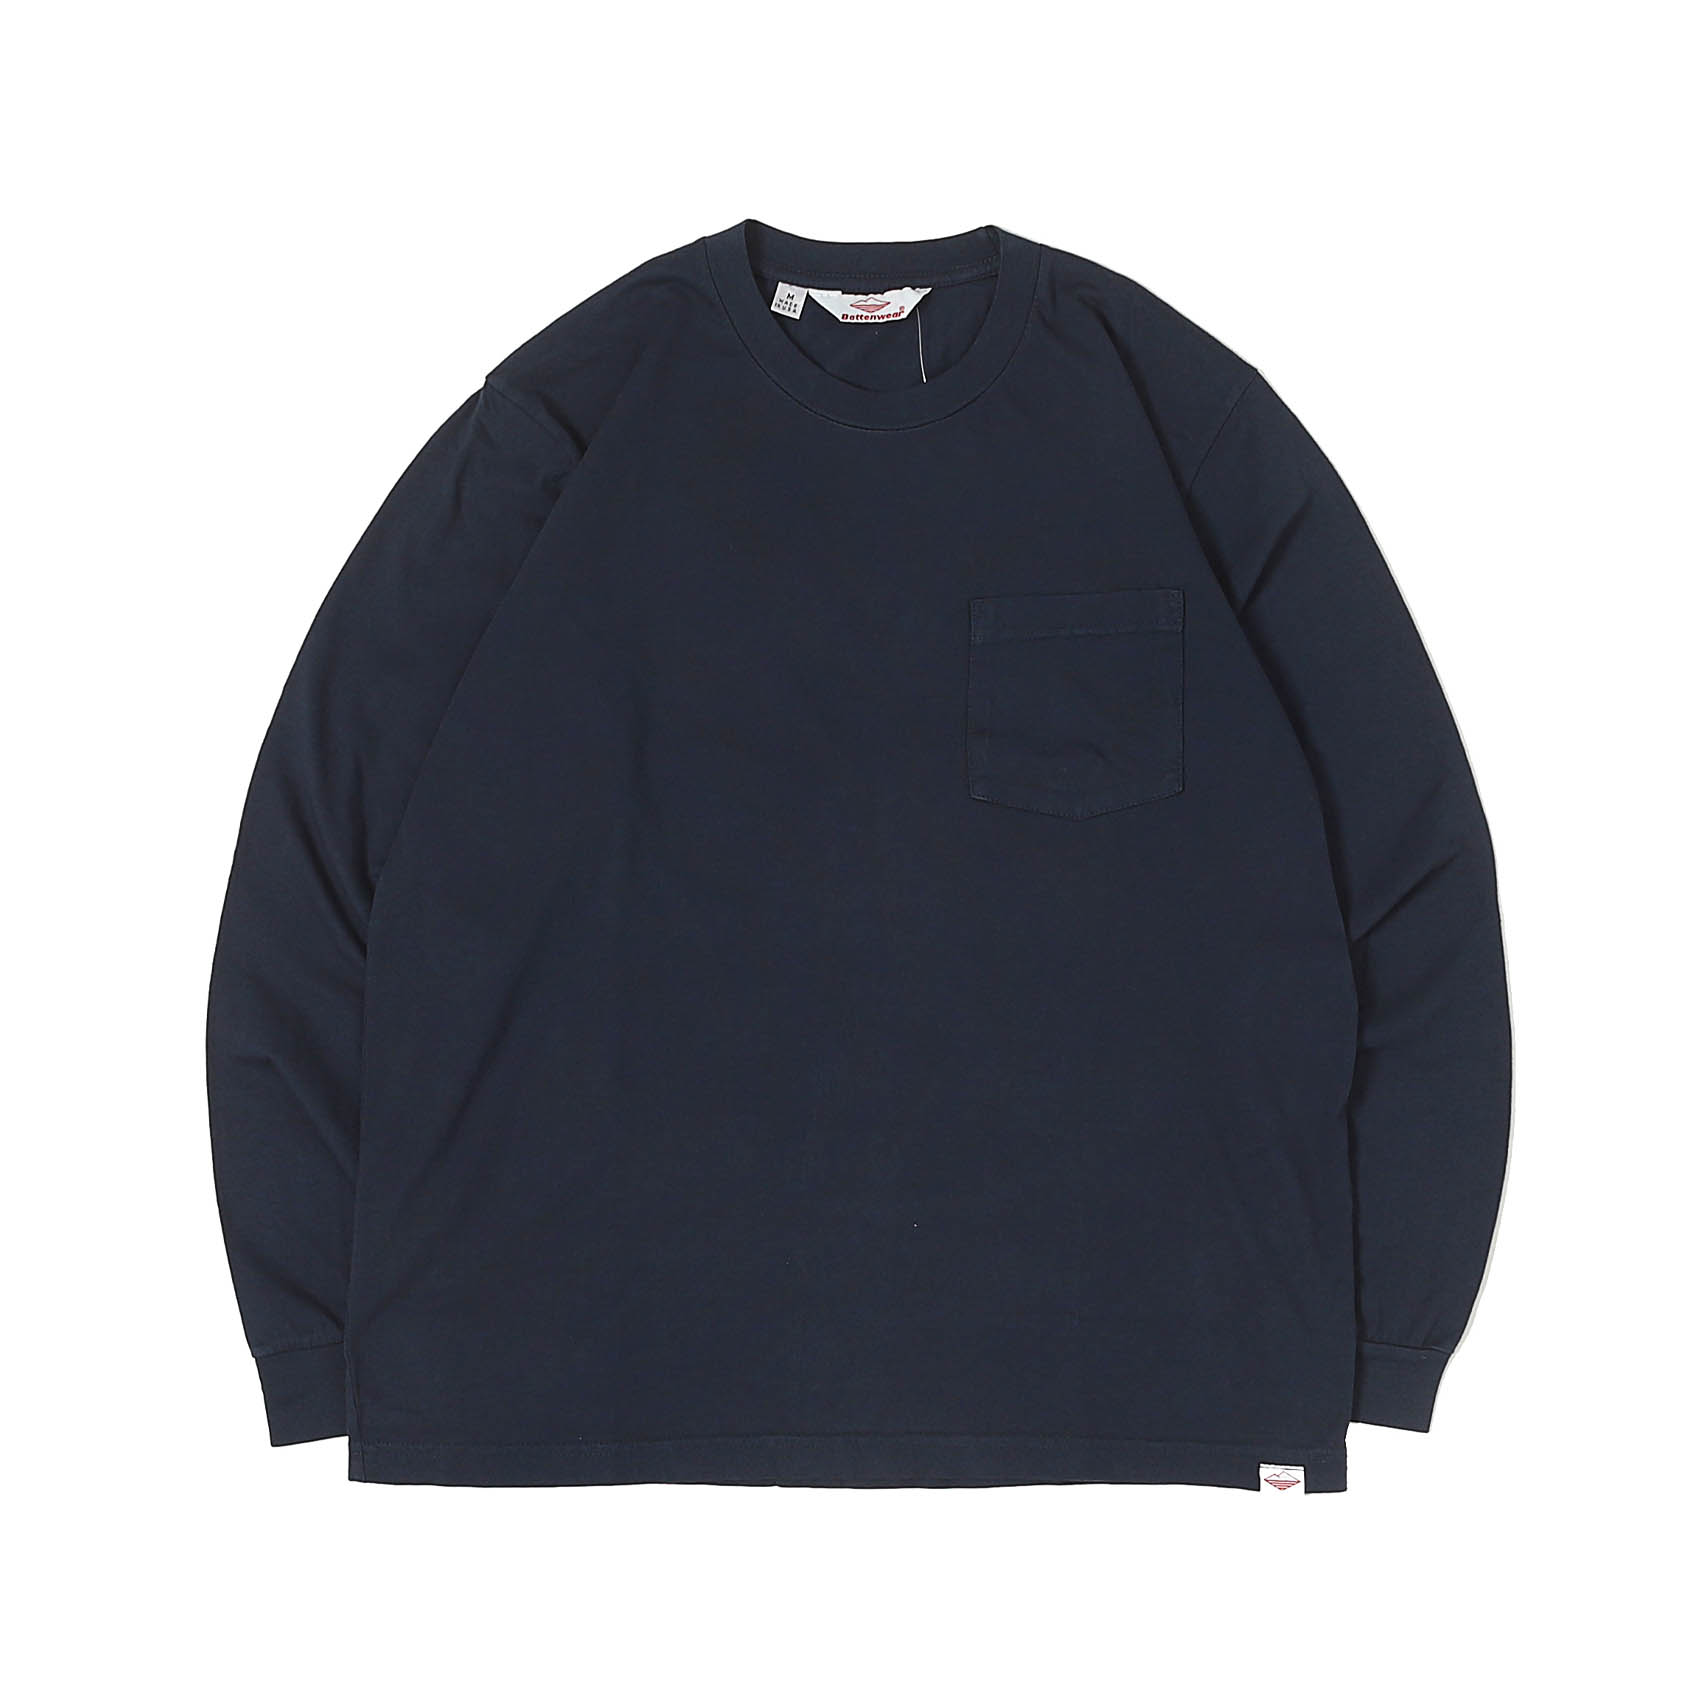 L/S POCKET TEE - NAVY